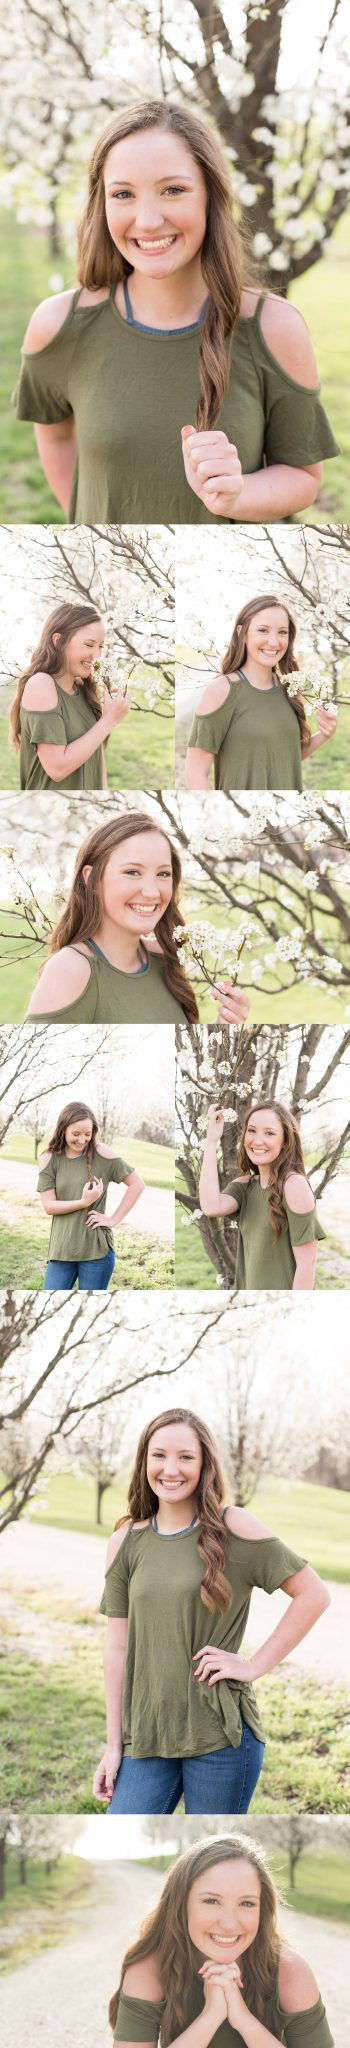 Maya Rayburn: Goodbye to Braces! | Lafayette, Indiana Senior Photos | Luminant Photography | Victoria Rayburn | Celebrate Getting Your Braces Off | Senior Pictures in Lafayette, Indiana